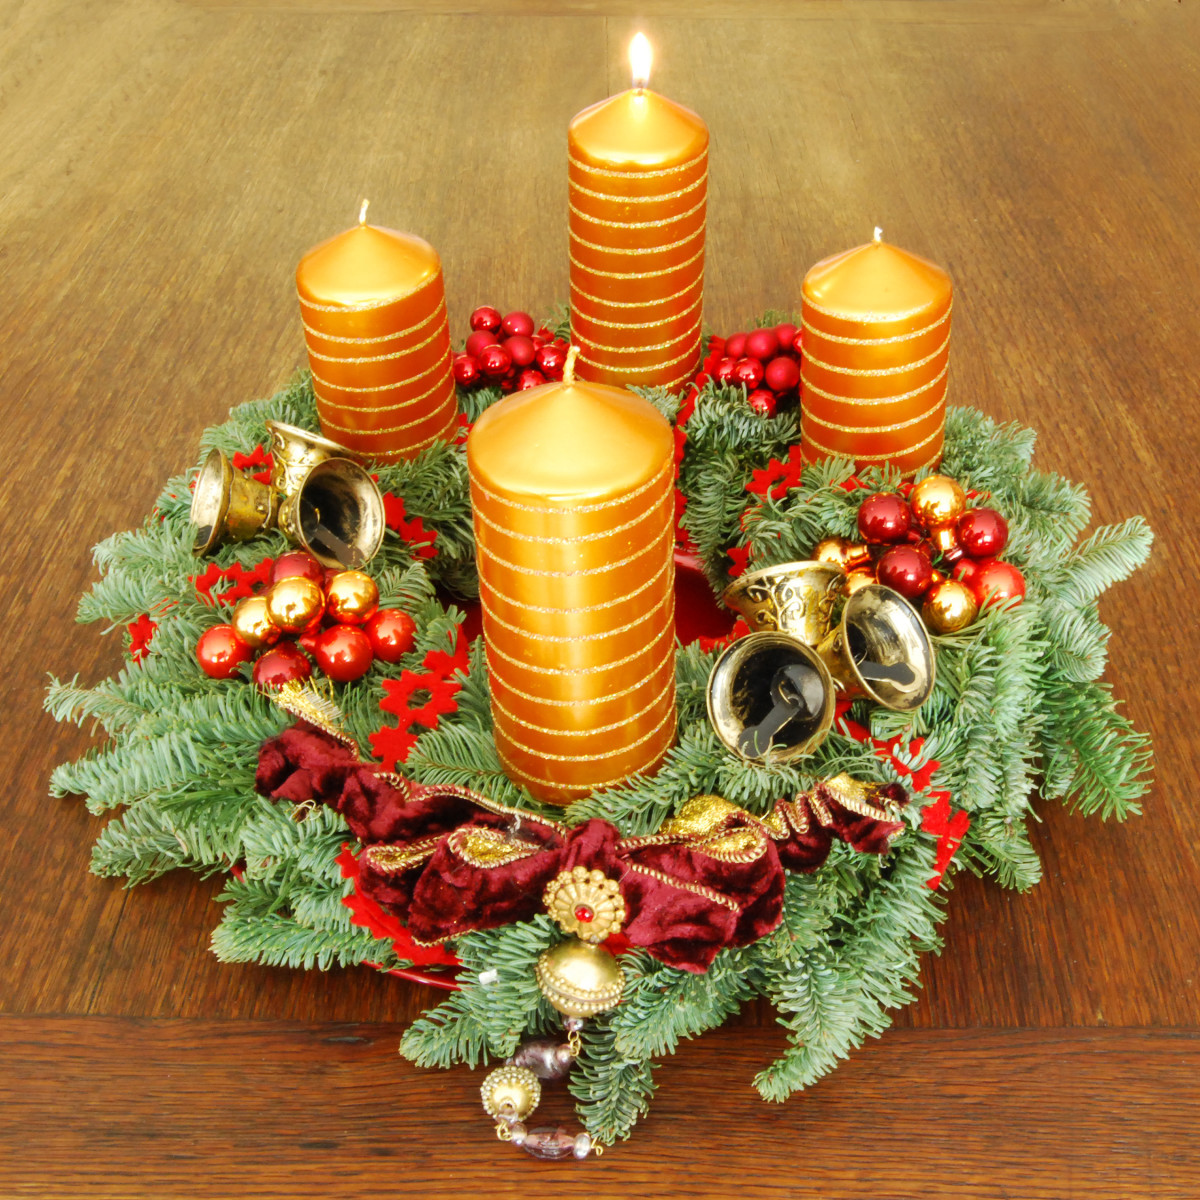 The Meaning of Advent: Celebrate With Calendar, Candles, & Wreaths